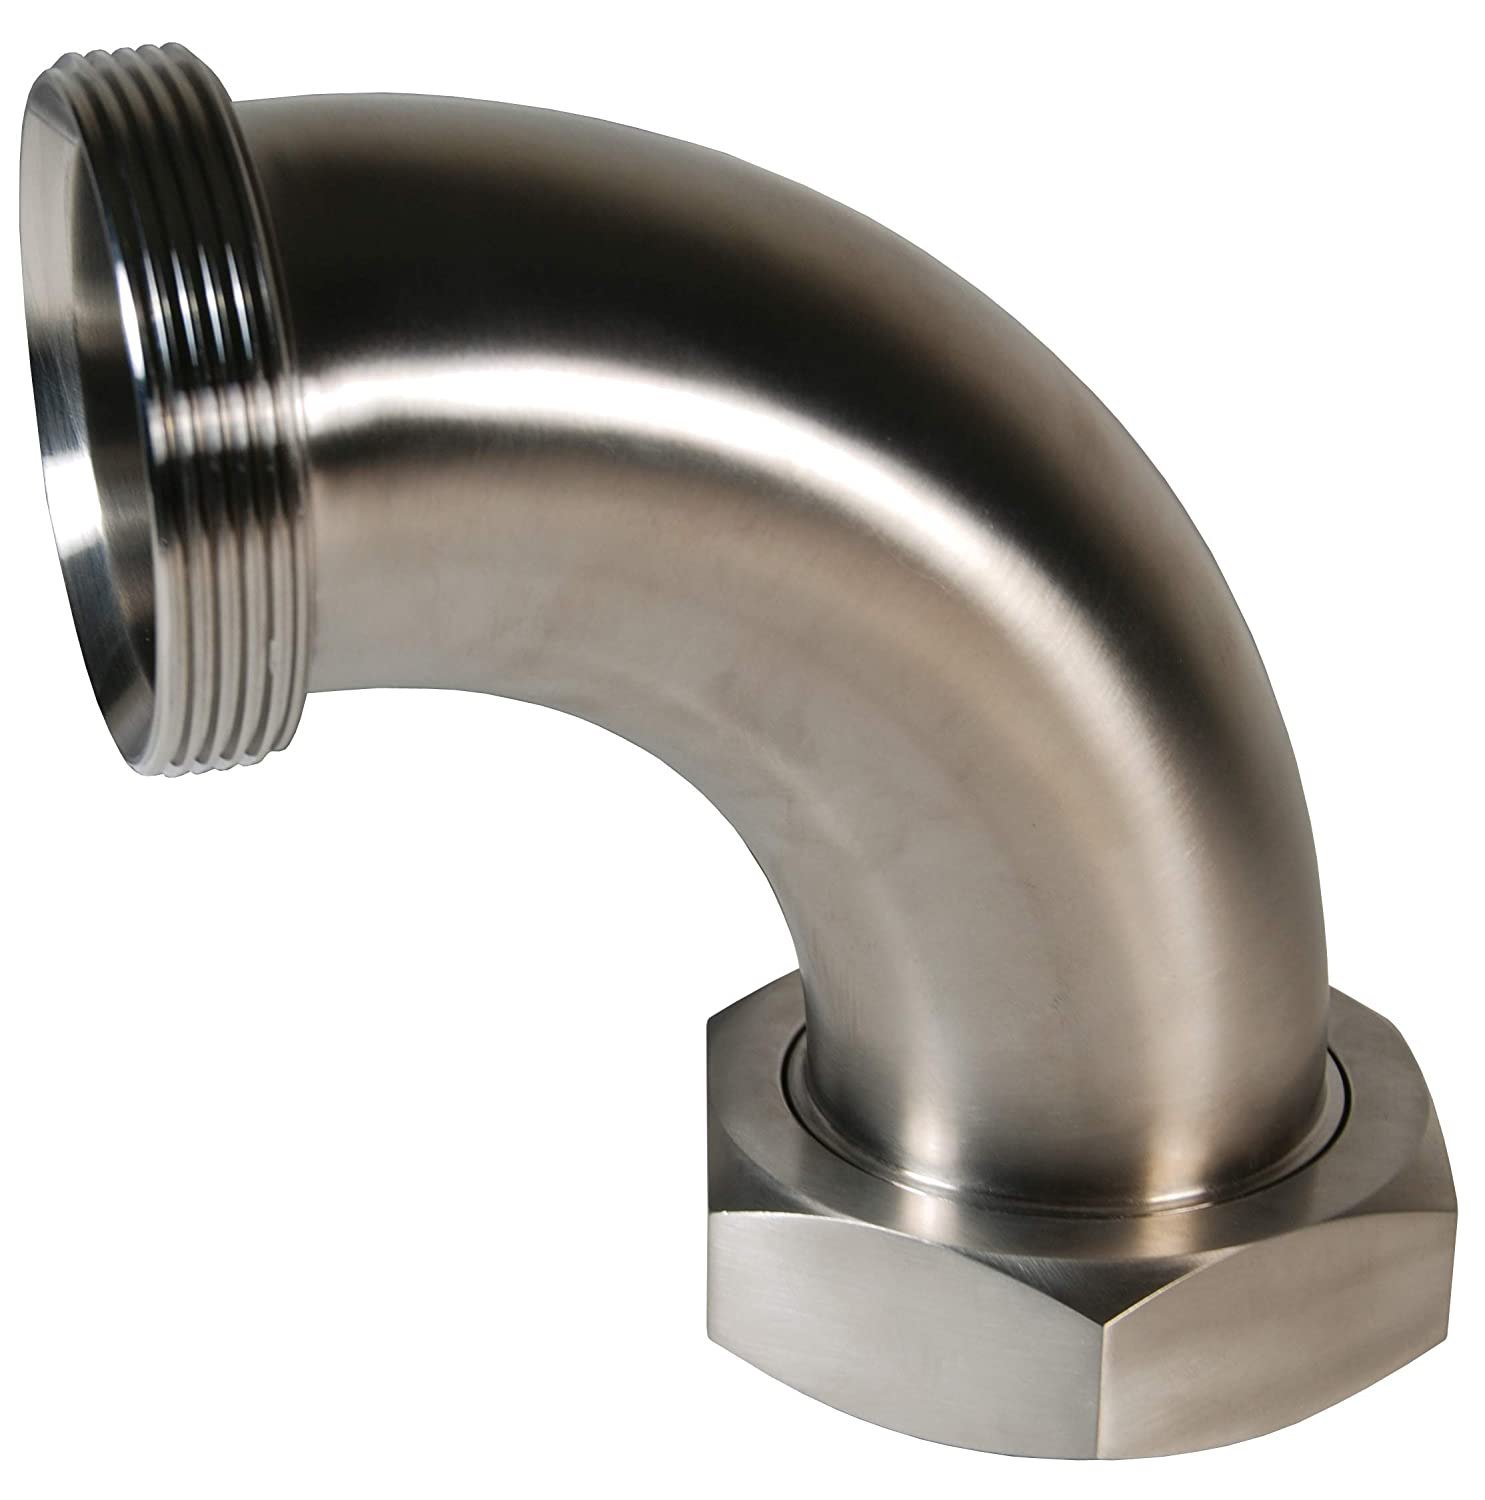 Plain Bevel with Hex Nut 90 Degree Elbow Dixon B2F-G250 304SS Threaded Bevel Seat 2.5